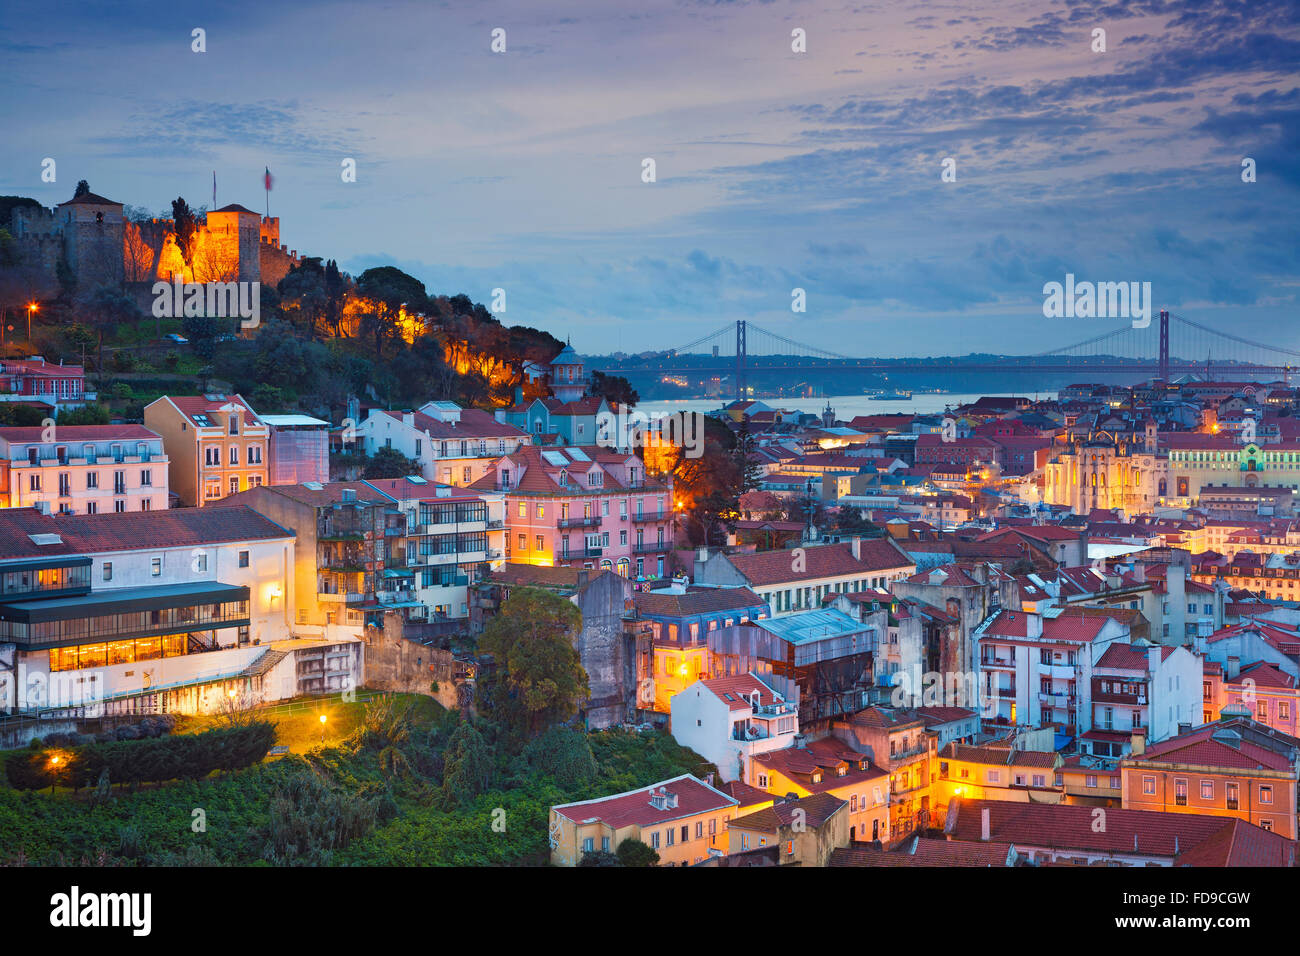 Lisbon. Image of Lisbon, Portugal during twilight blue hour. - Stock Image